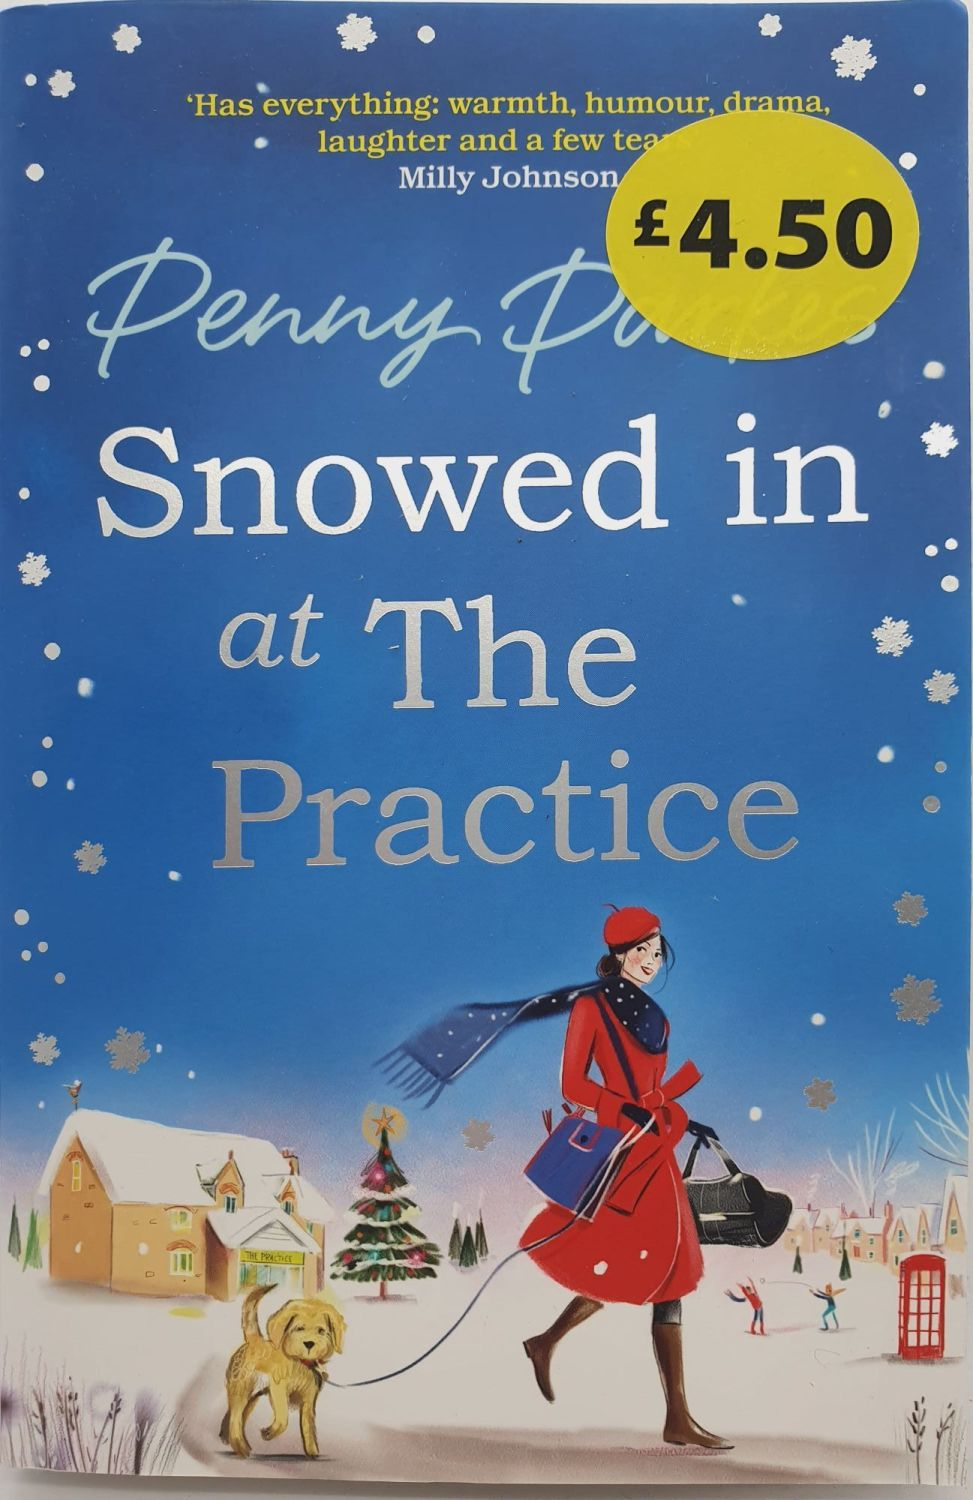 Snowed In At The Practice - Penny Parkes